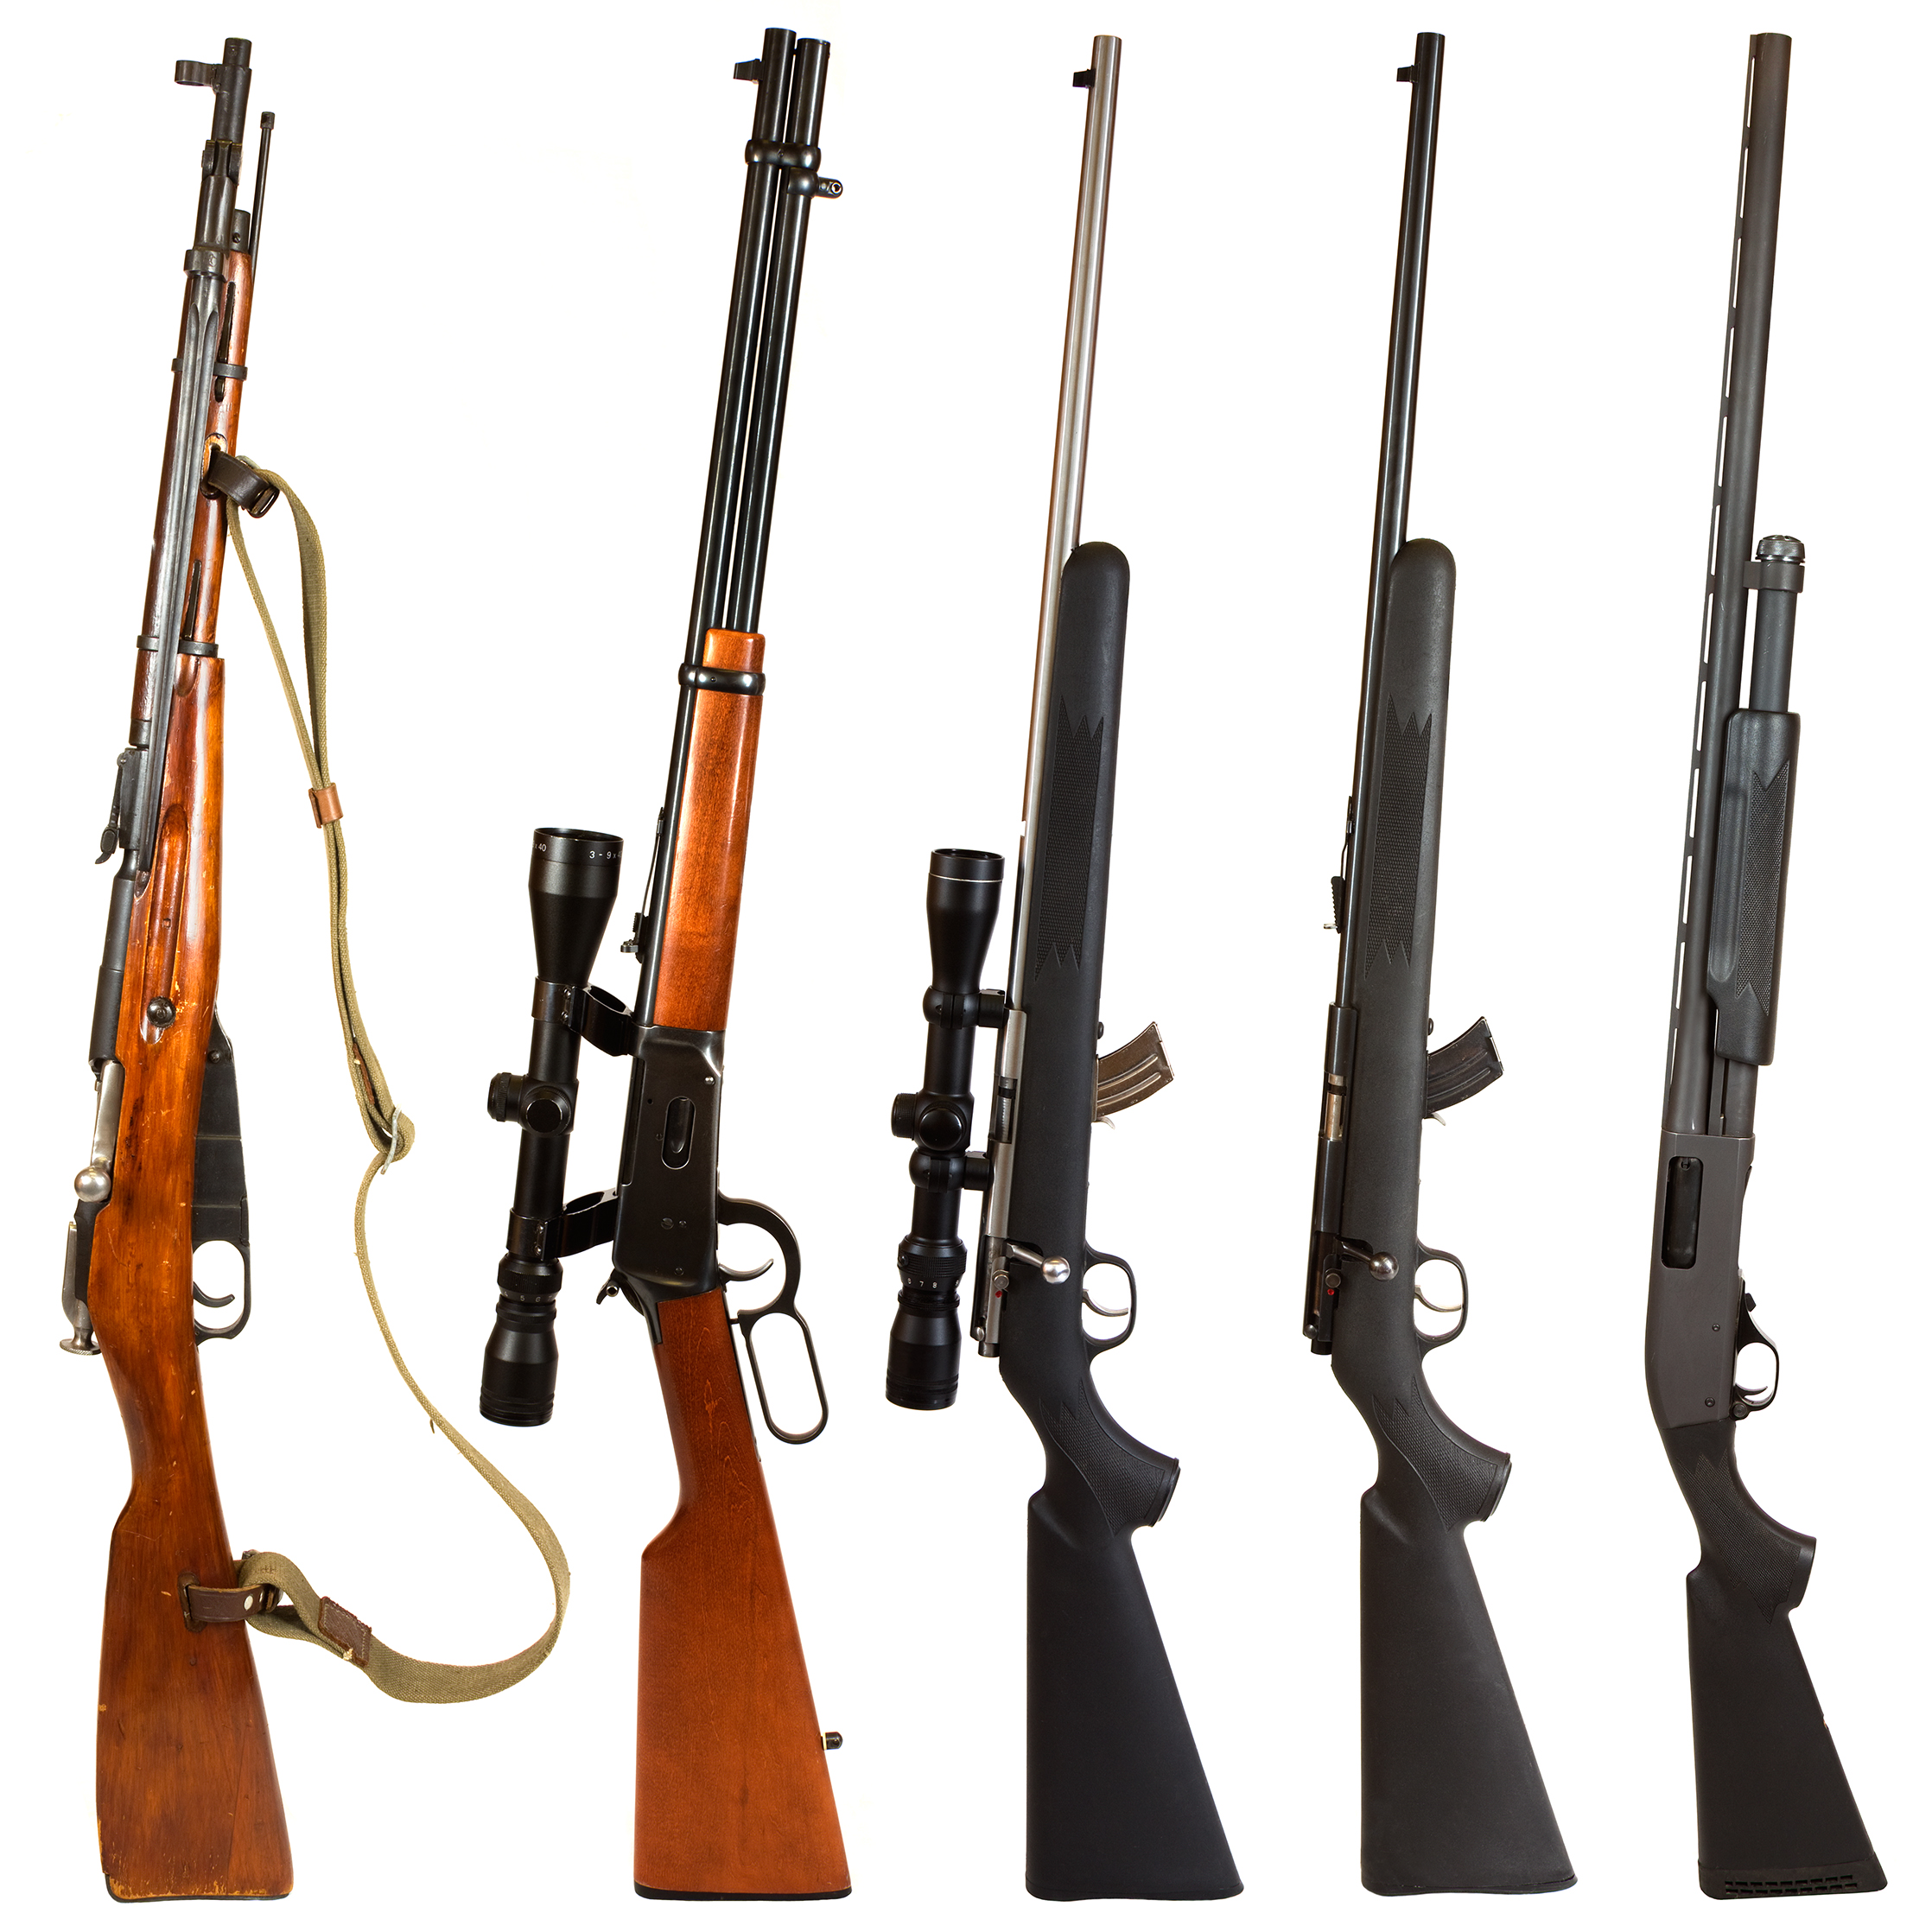 """Rifles isolated on white background depicting a Russian bolt action Mosin Nagant, 30-30 Winchester lever action rifle, 22. bolt action rifle with scope, 22. bolt action rifle without a scope, and a black pump-action 12 gauge shotgun."""